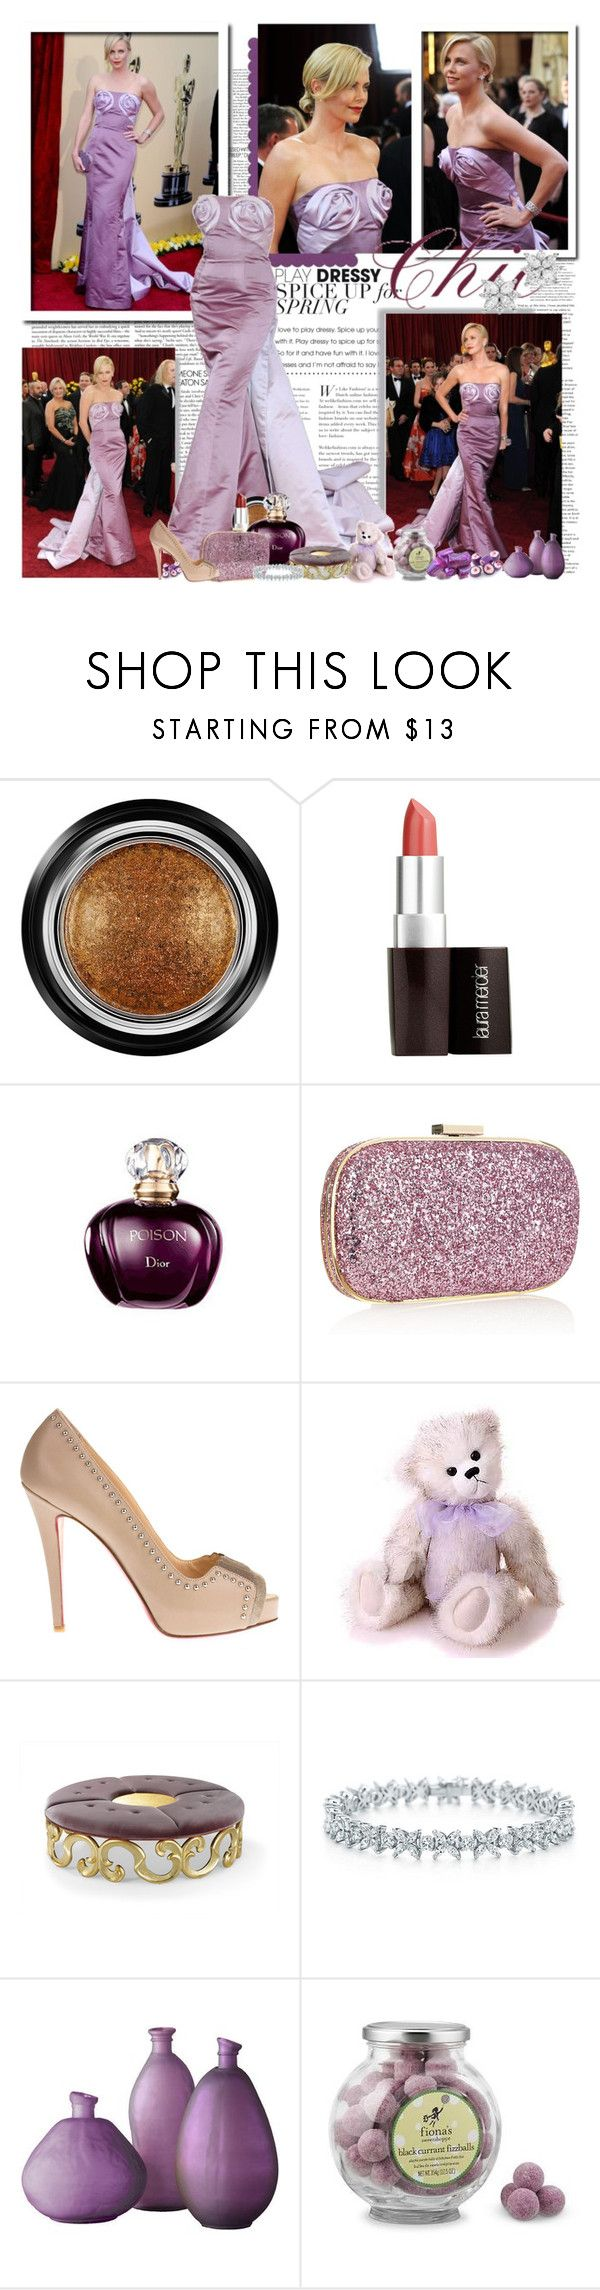 """Charlize Theron at the Oscars 2010..."" by purplecherryblossom ❤ liked on Polyvore featuring Christian Dior, Giorgio Armani, Laura Mercier, Anya Hindmarch, Christian Louboutin, Ashby, Tiffany & Co., Williams-Sonoma and Novelty"